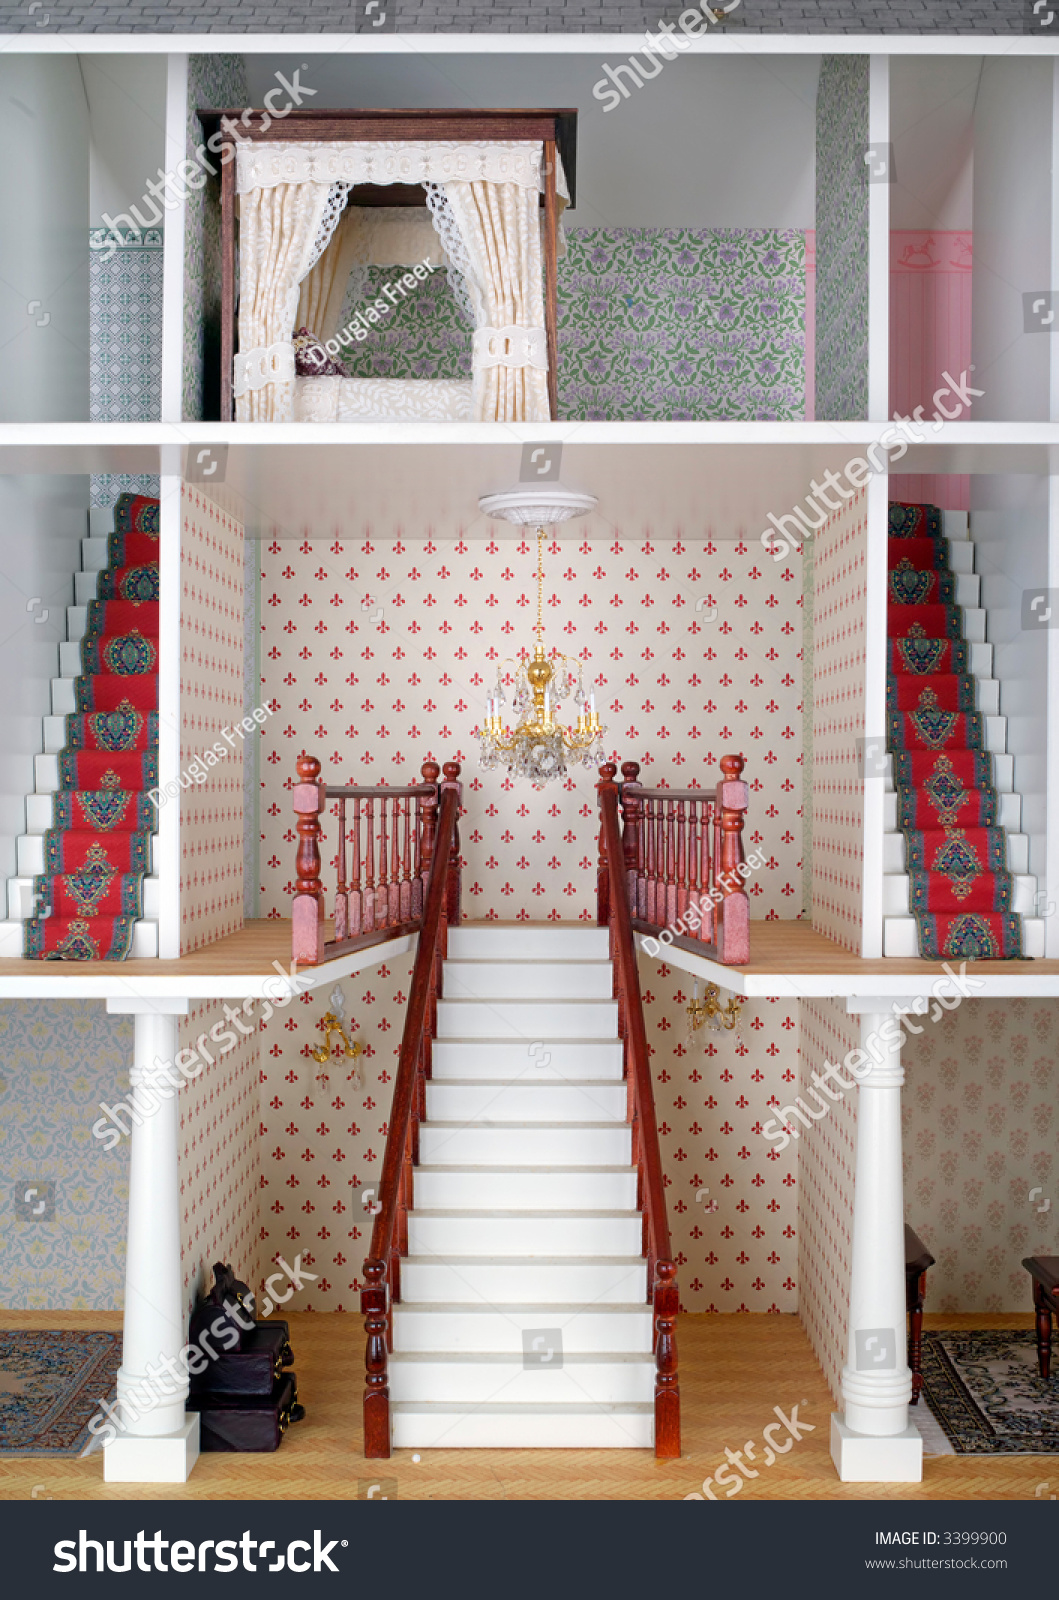 Miniature World Adult Dolls House Staircase Stock Photo - Dolls house interior